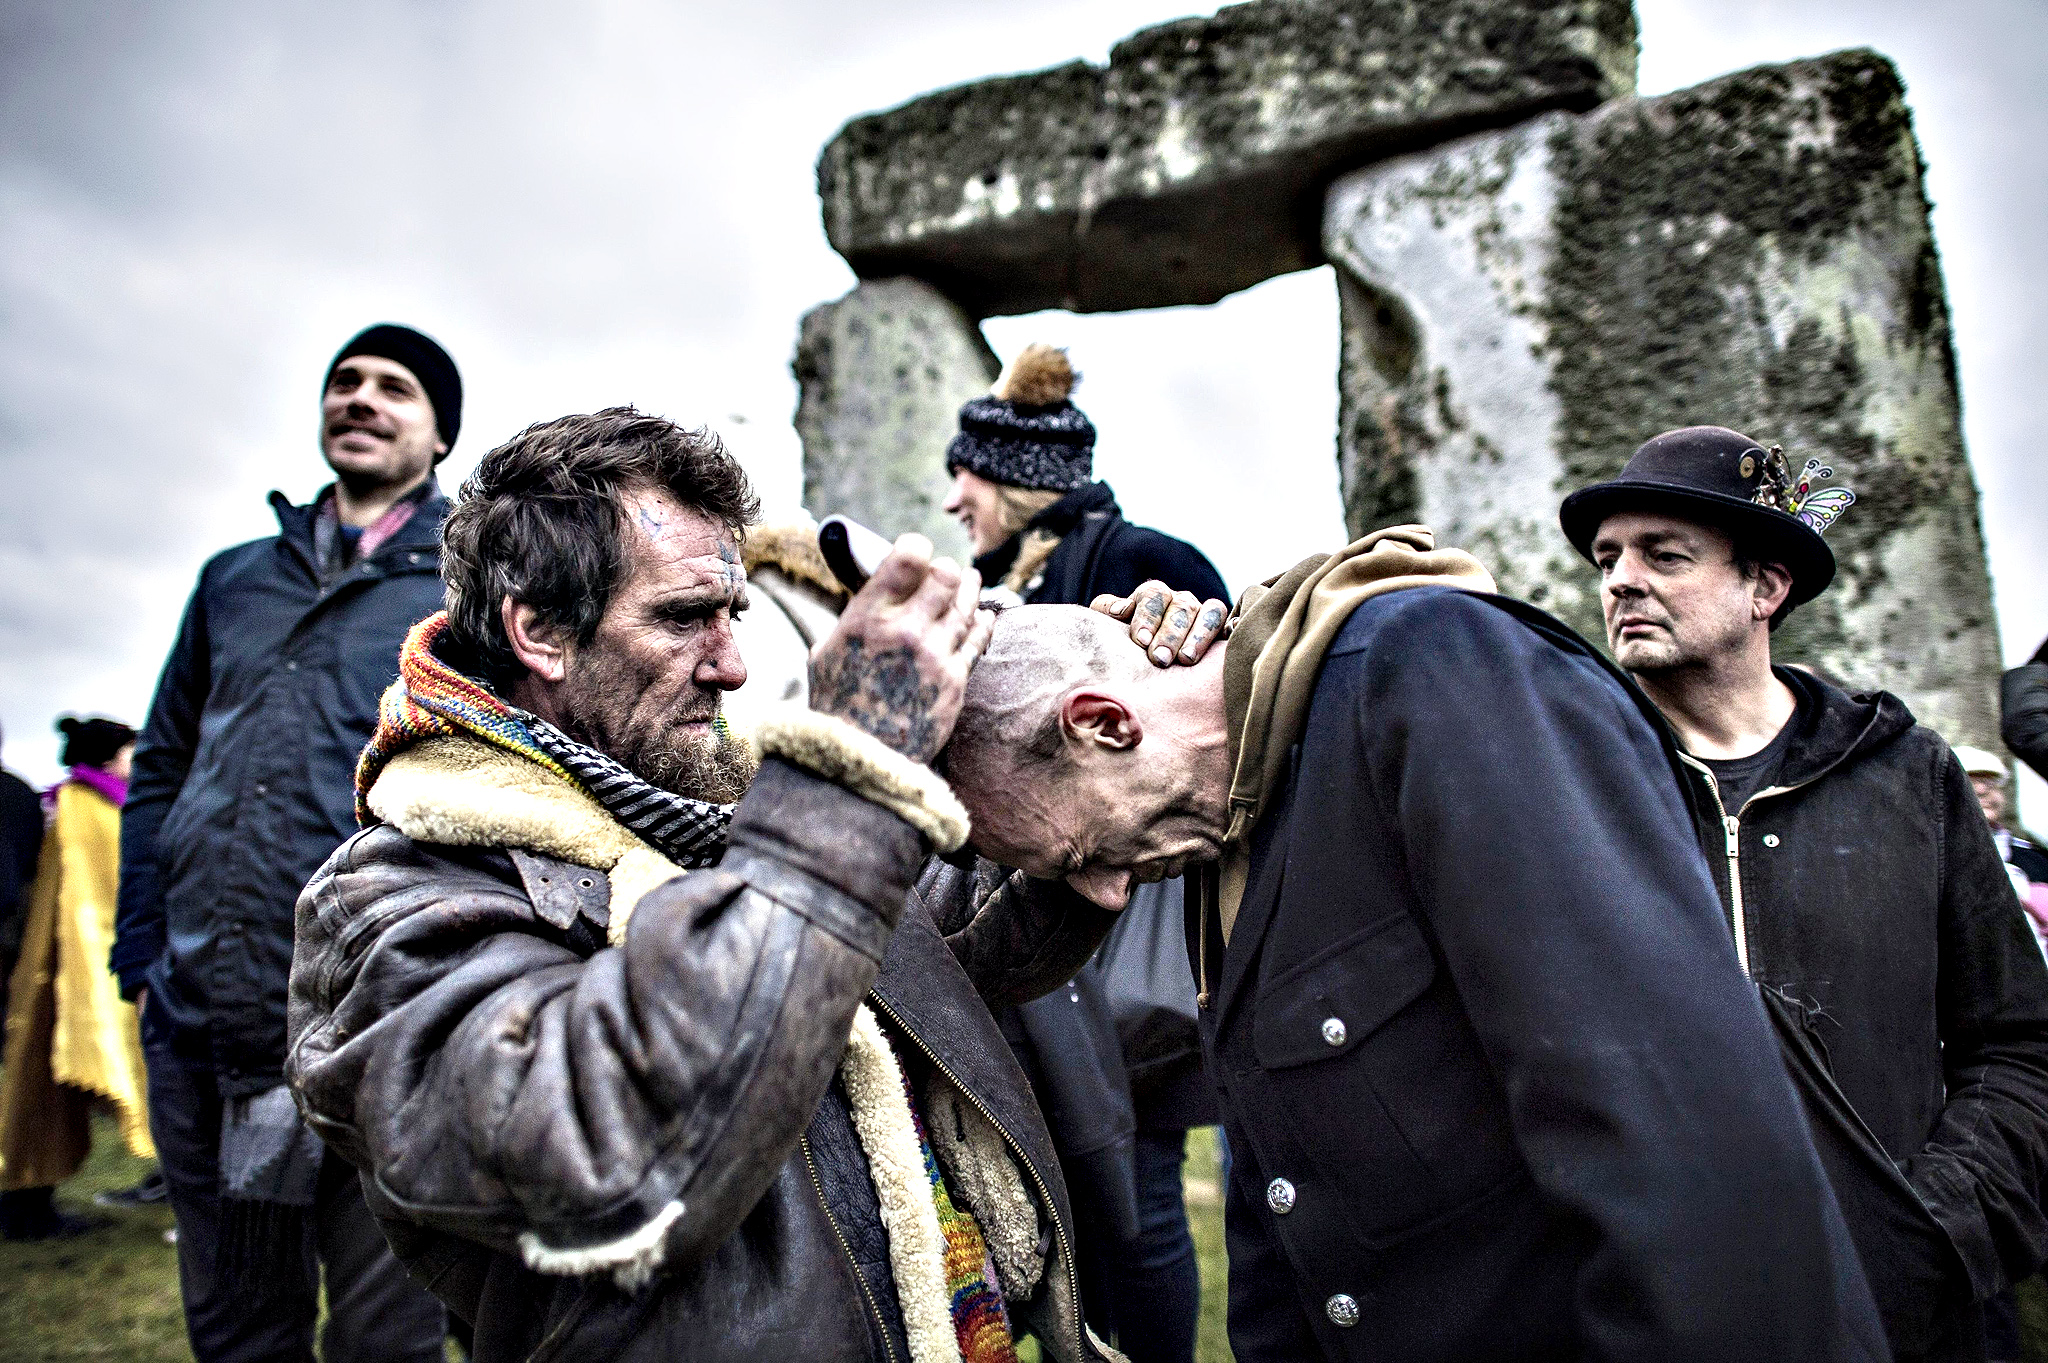 A man has his head shaved inside the stone circle at Stonehenge, Witshire, where people are gathering to celebrate the Winter solstice.